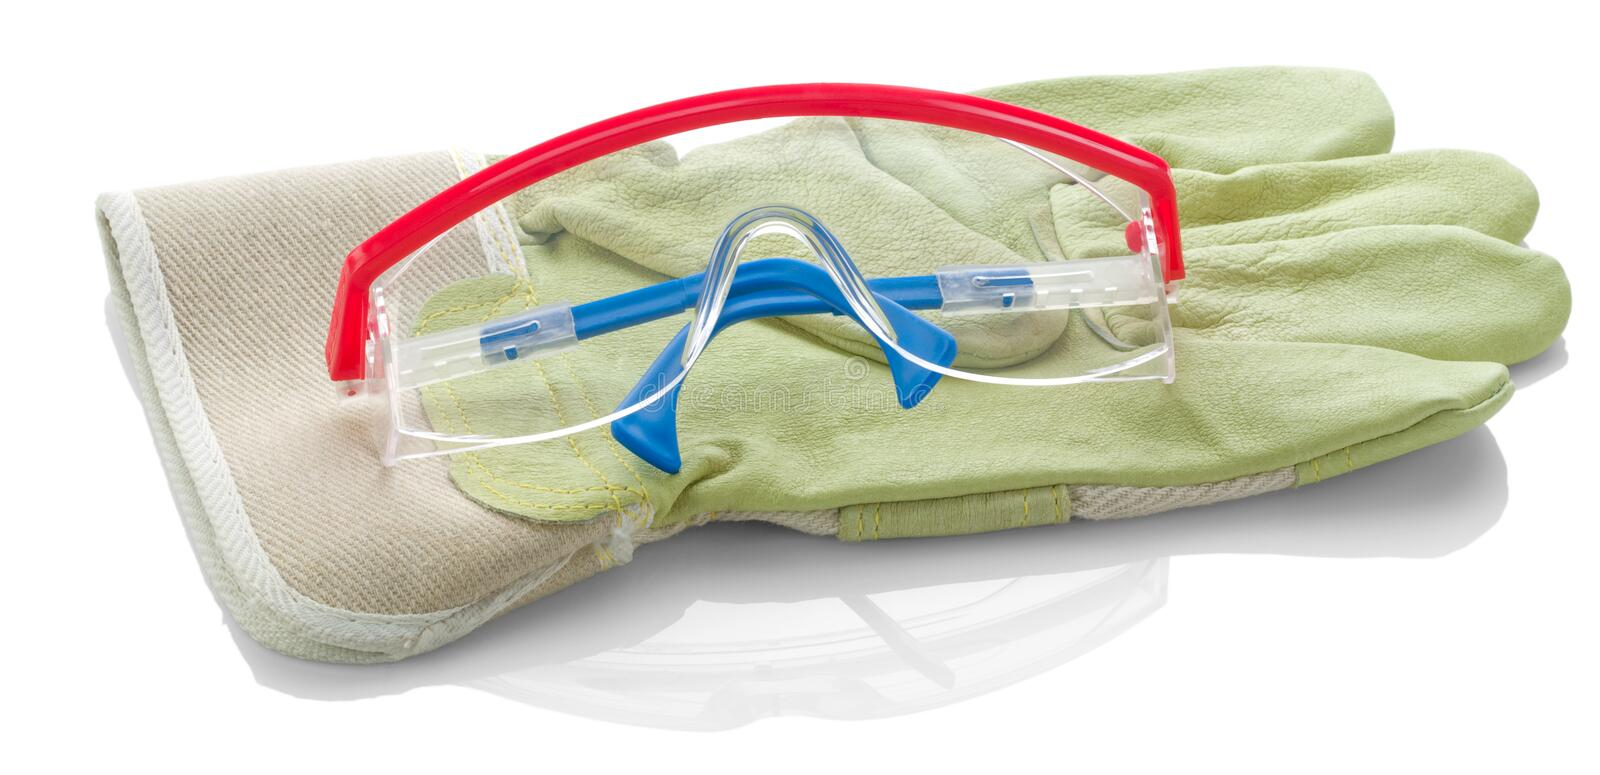 Glasses on protective glove isolated royalty free stock photos